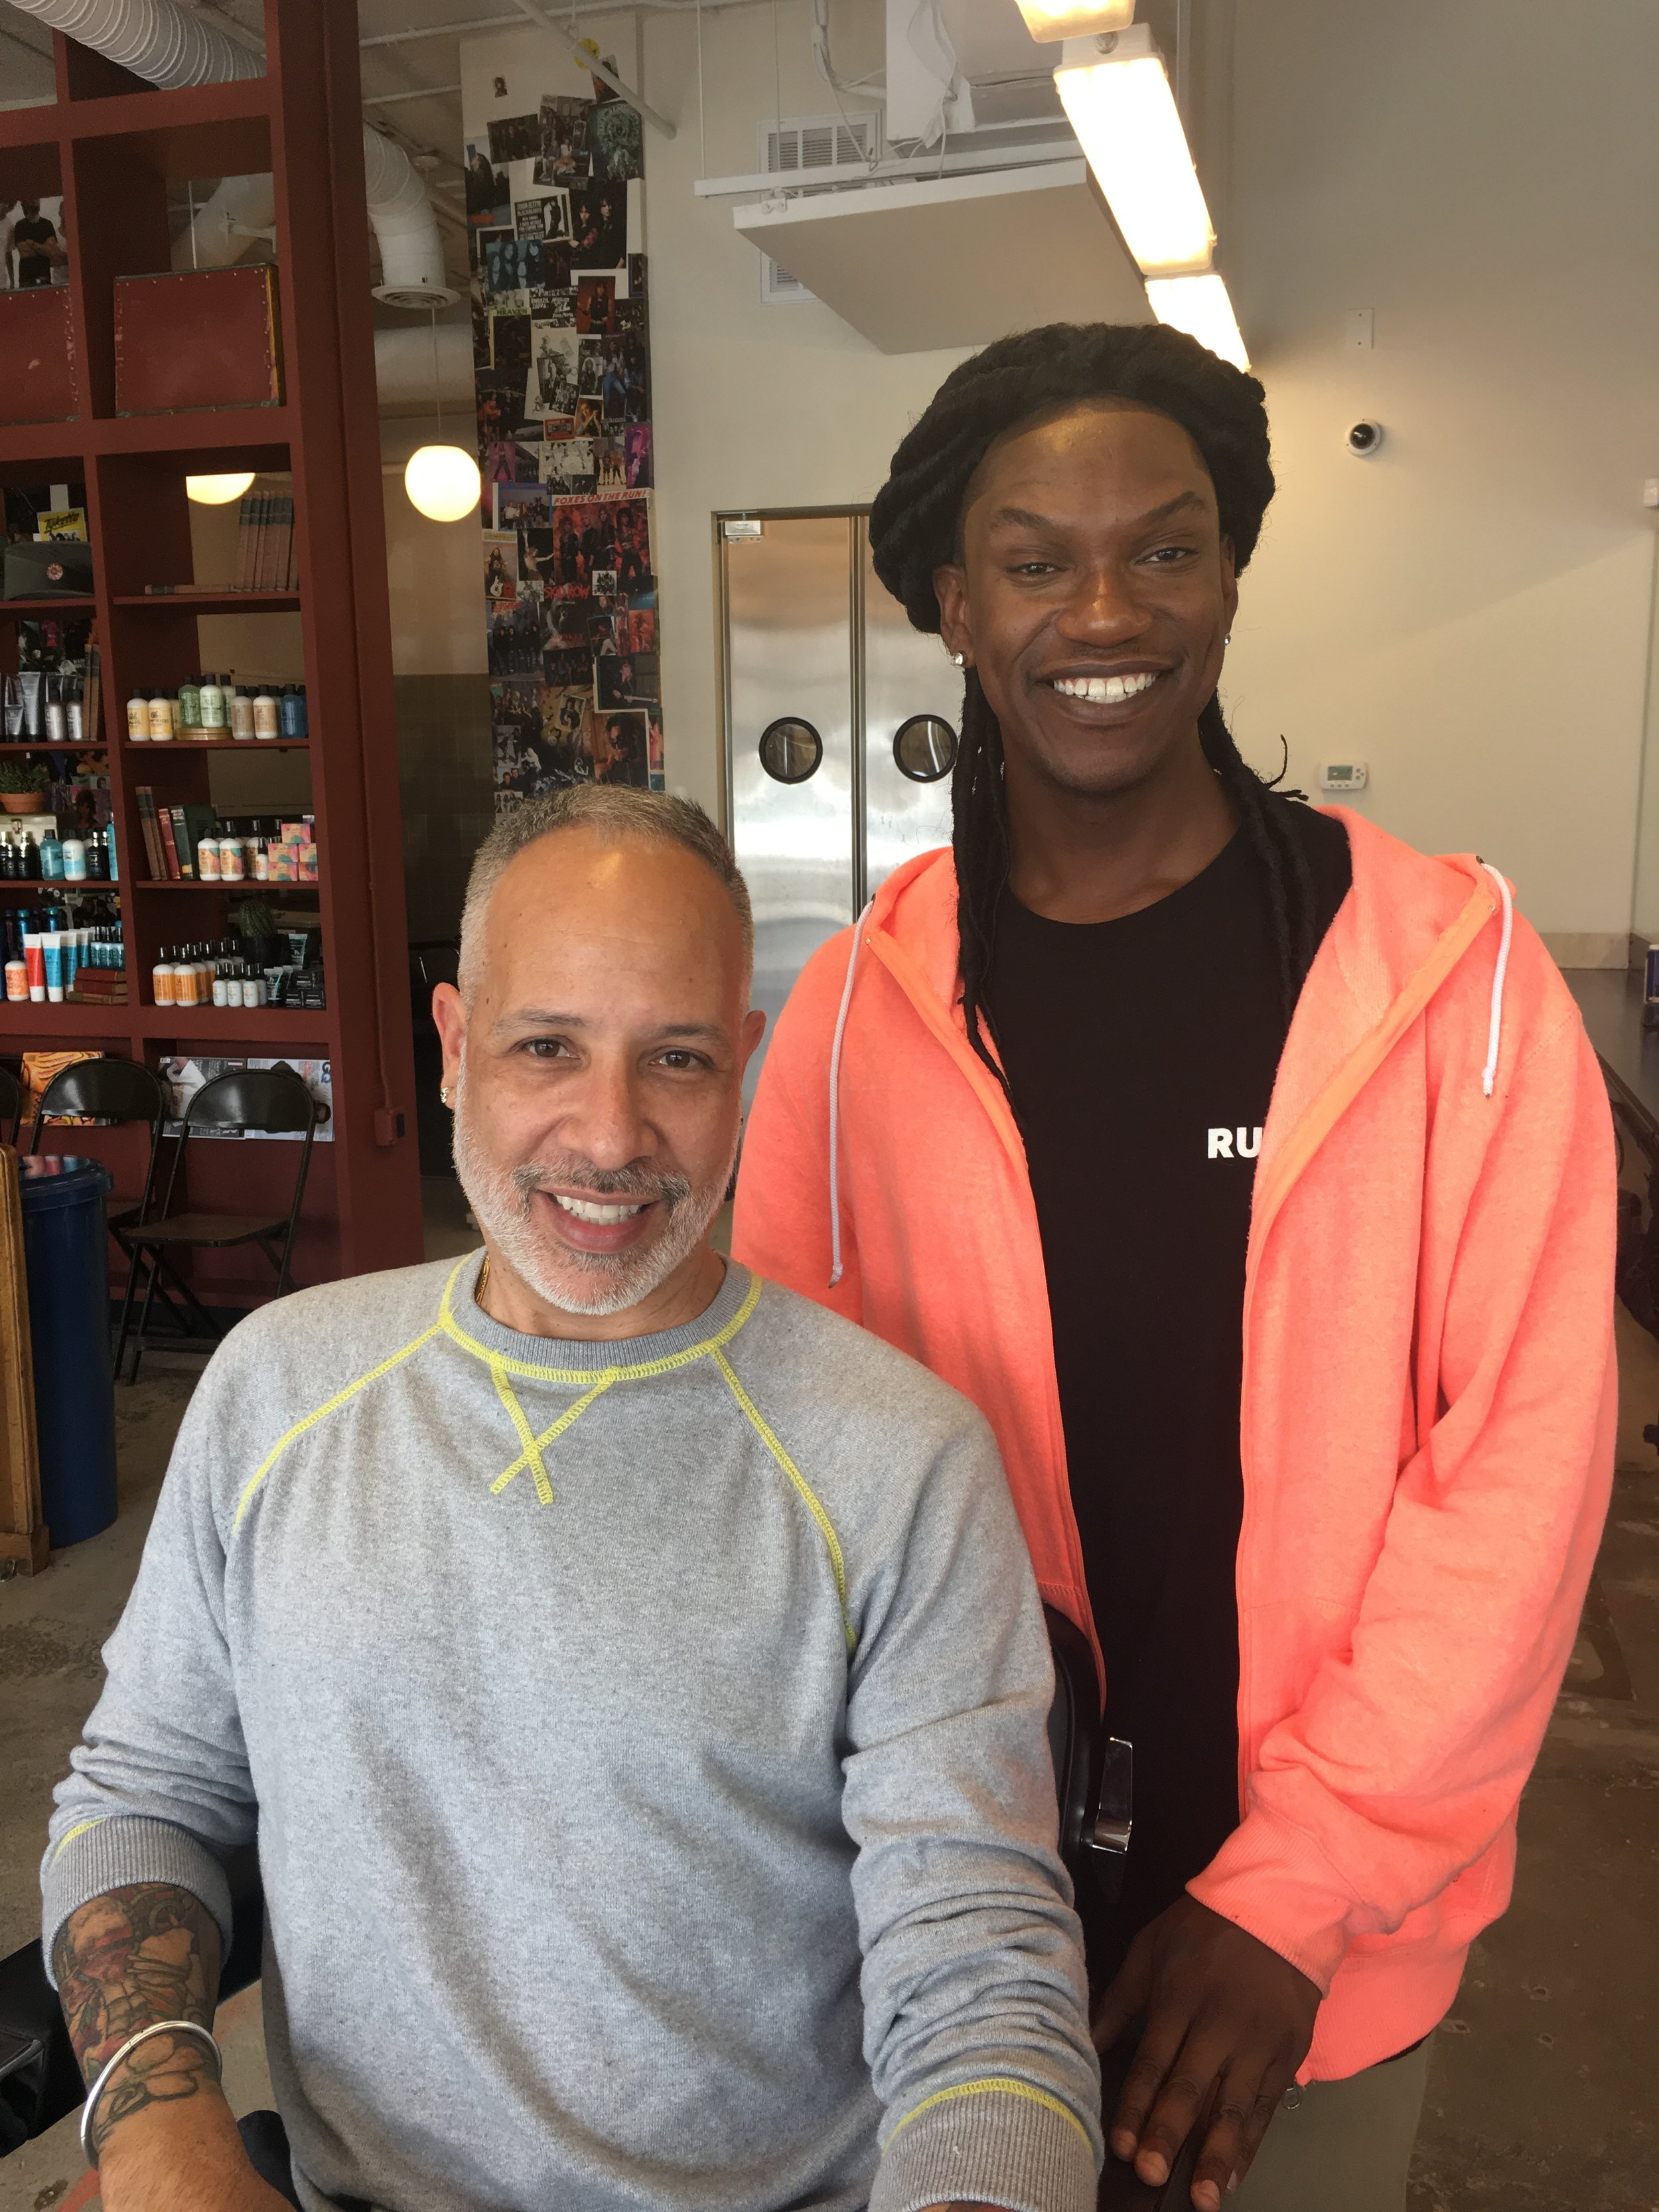 Check out Michael for your next cut! He is wonderful and will take great care of you.